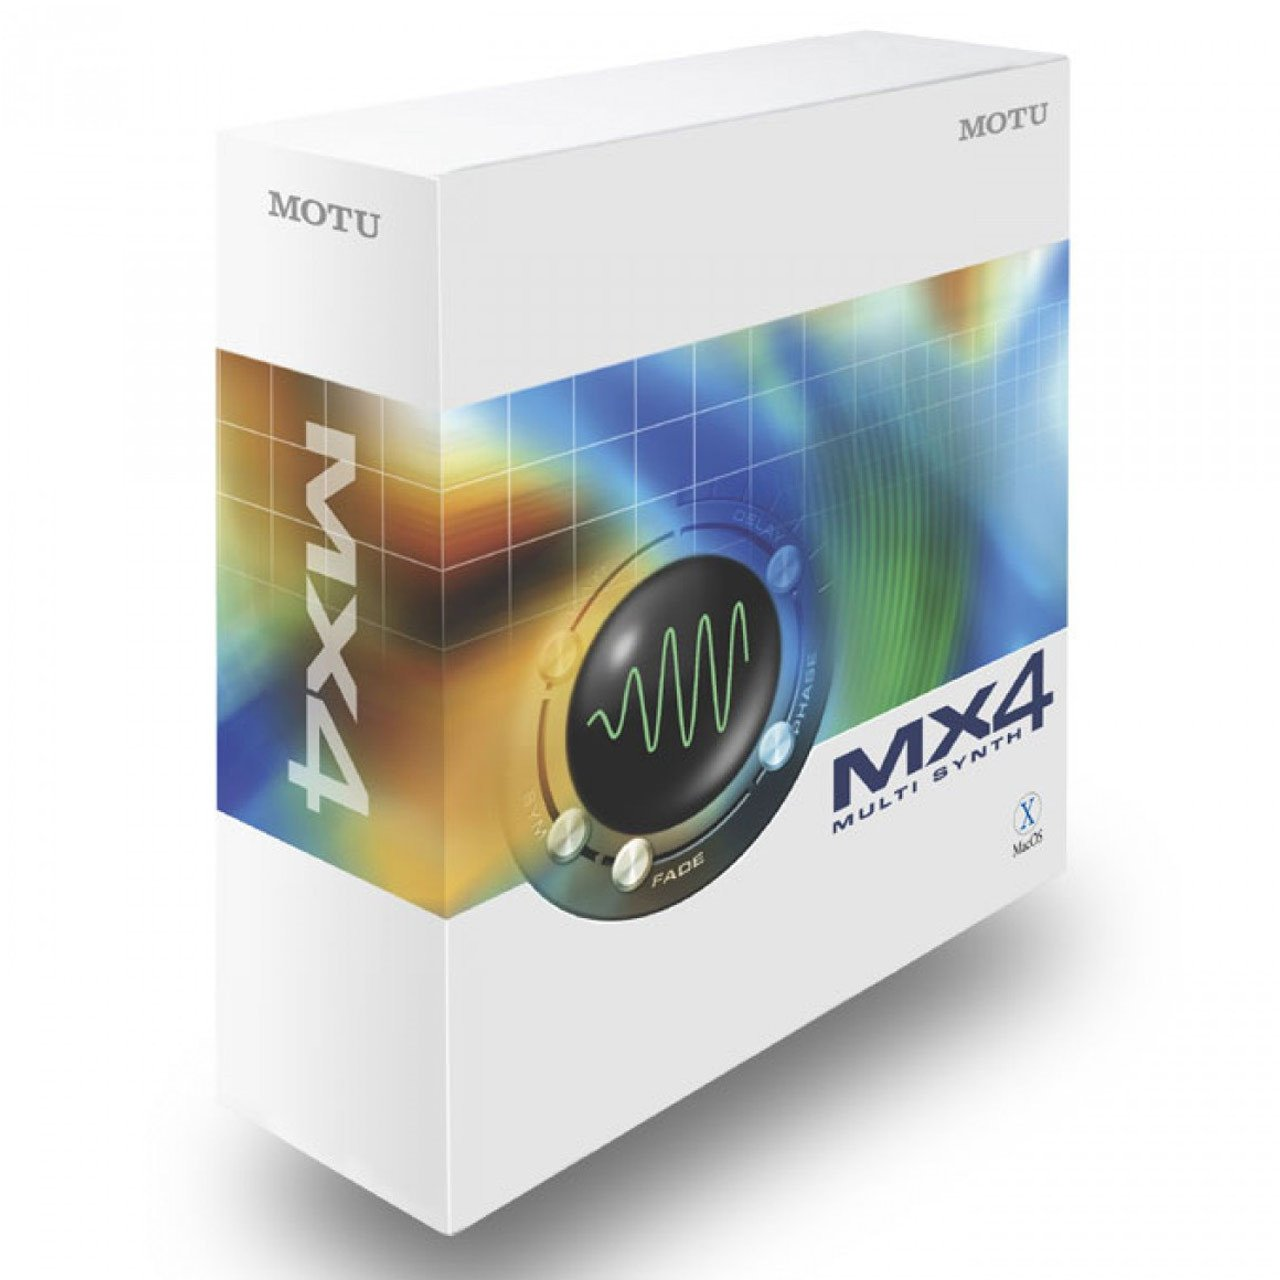 Software Instruments - MOTU MX4 Multi Synth Software Instrument